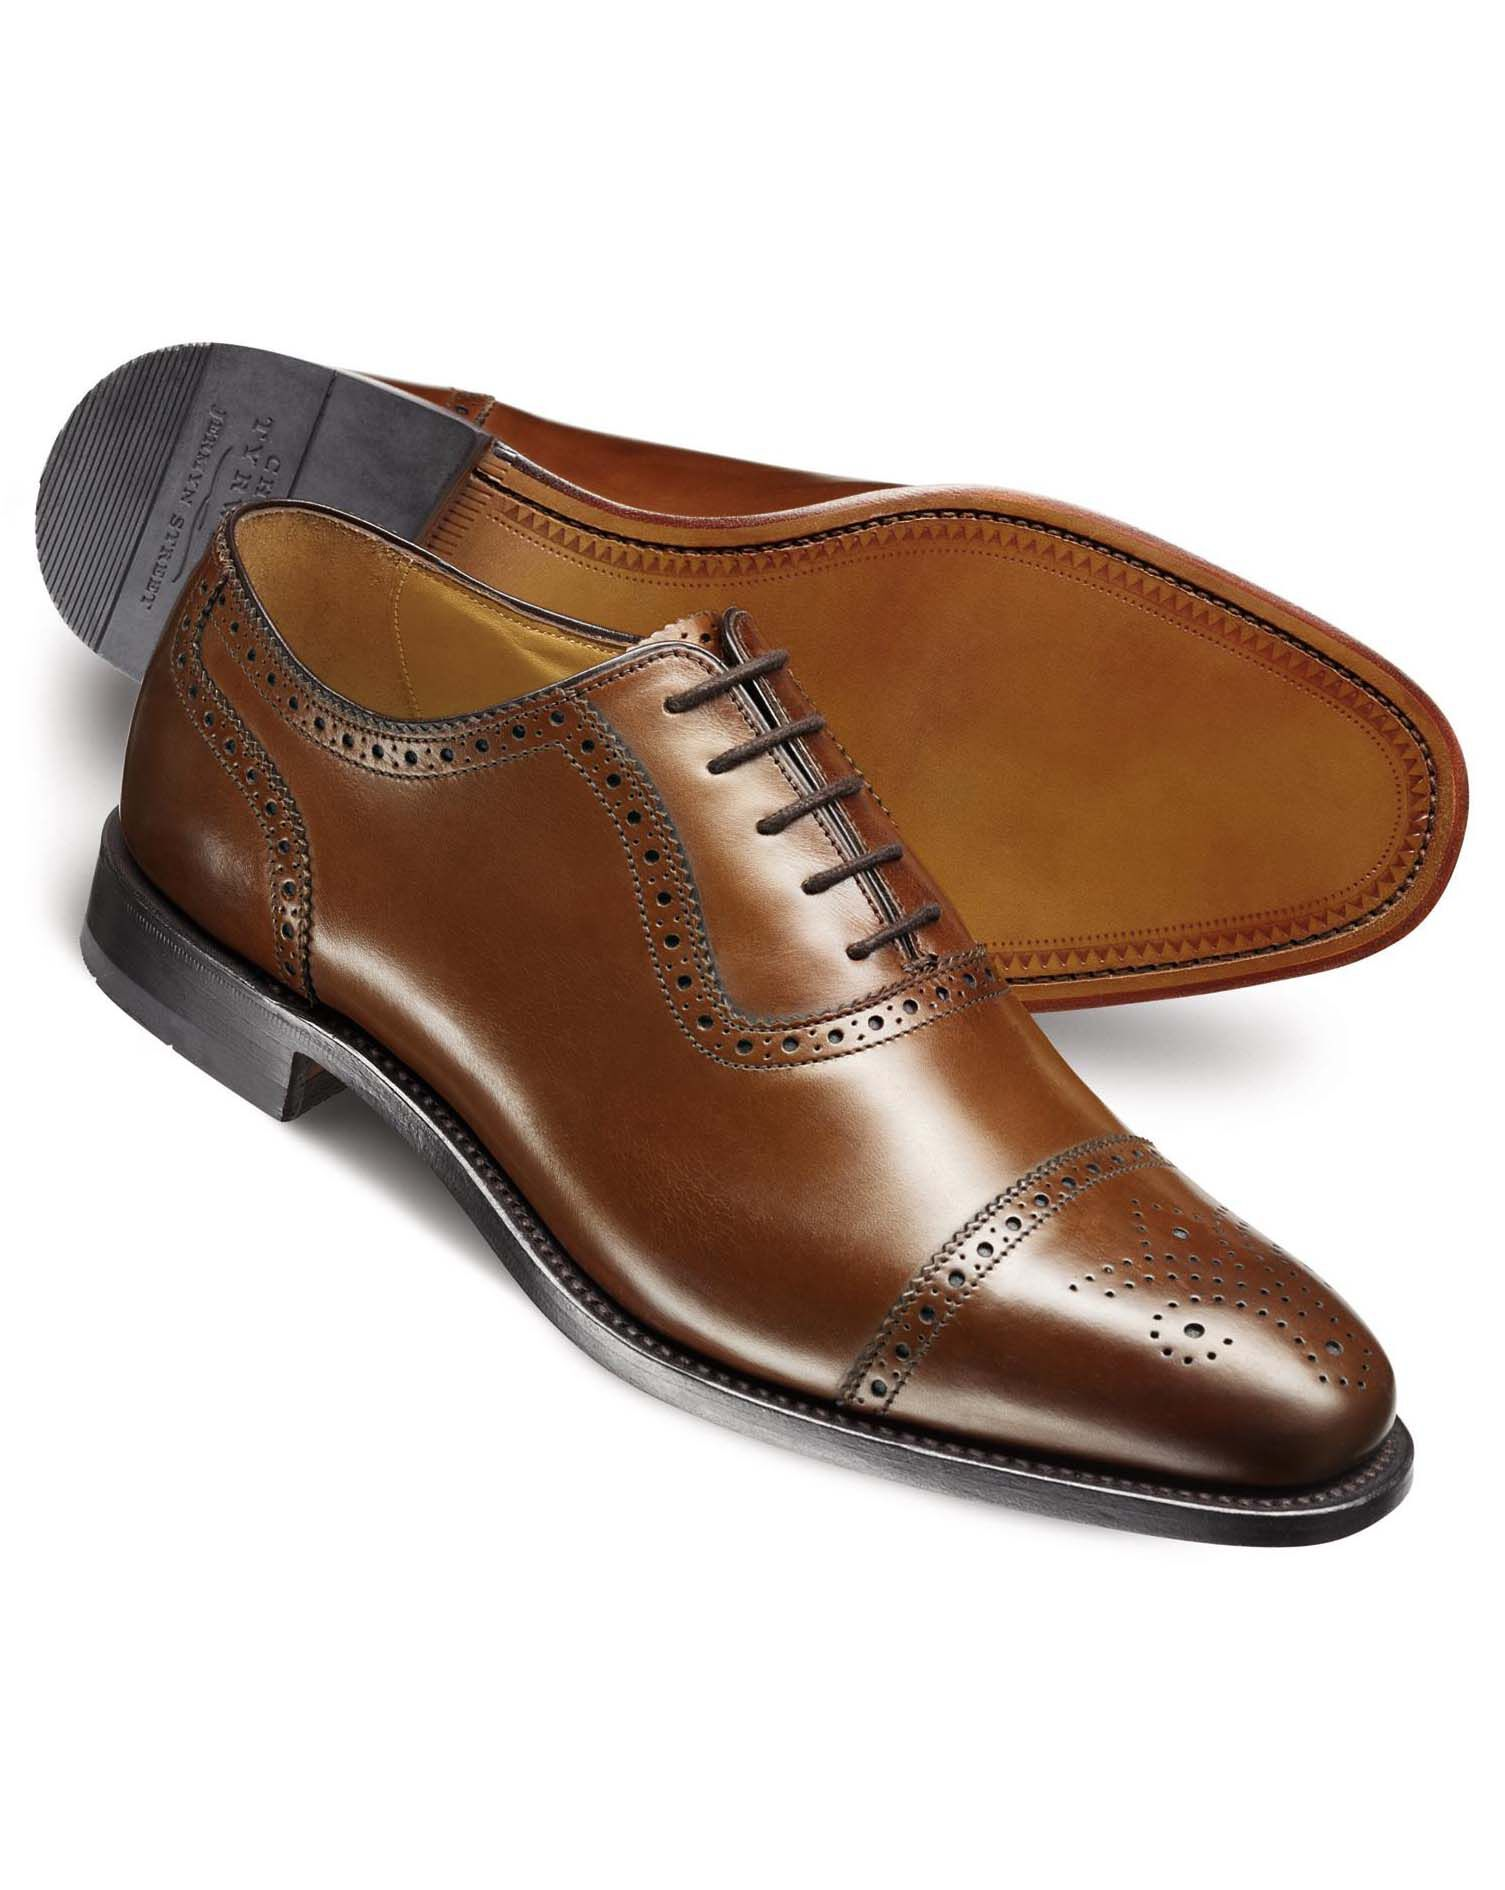 Brown Clarence Toe Cap Brogue Shoes Size 6.5 W by Charles Tyrwhitt